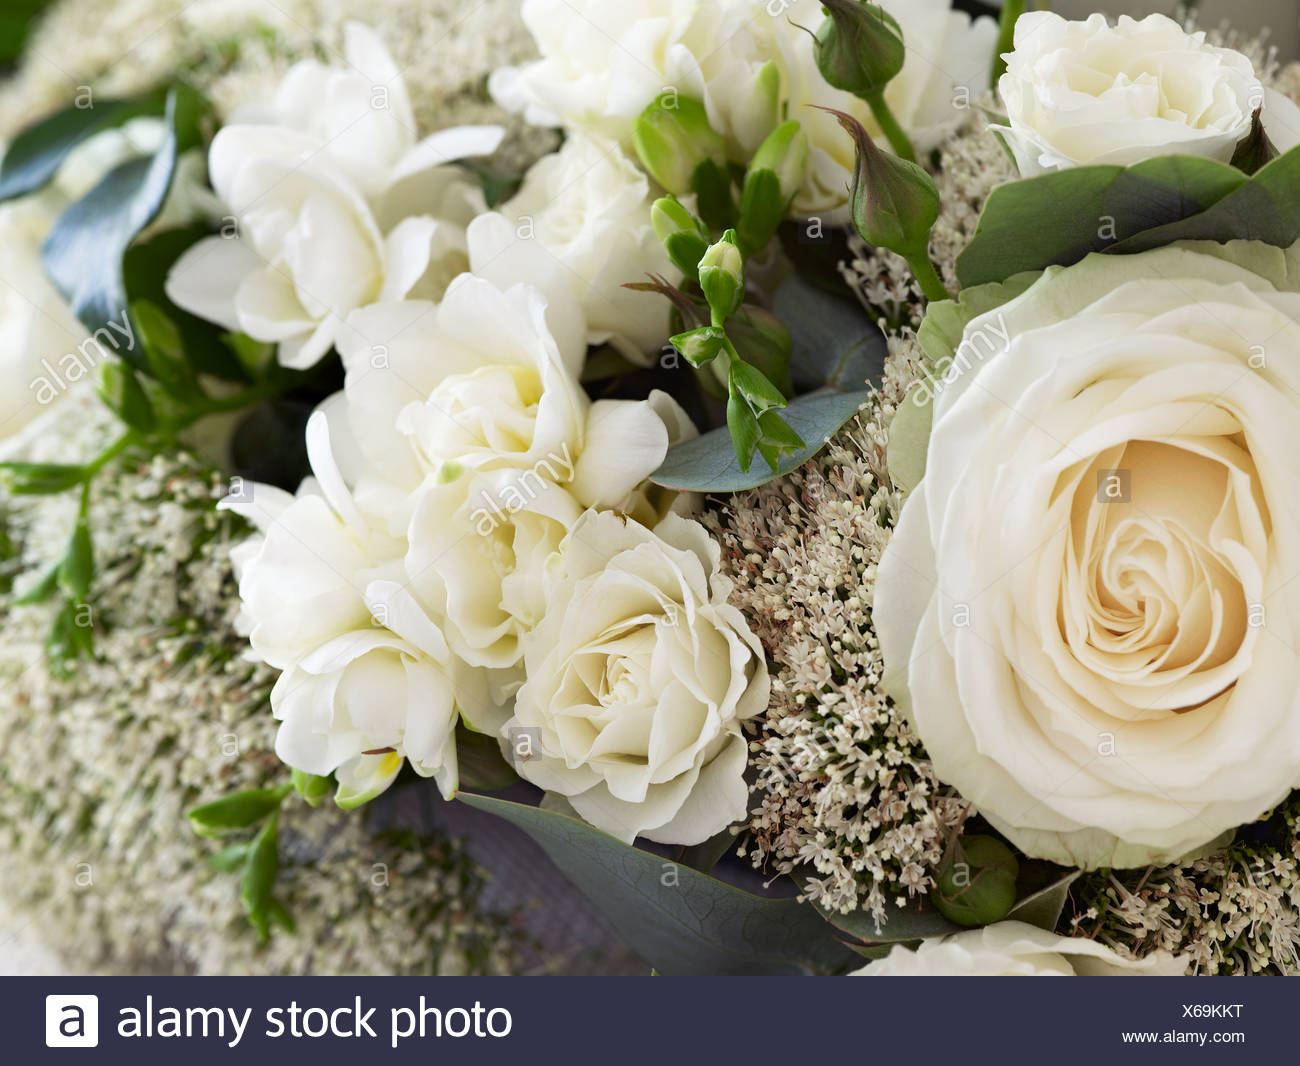 Bunch Of Flowers Including White Roses Close Up Stock Photo